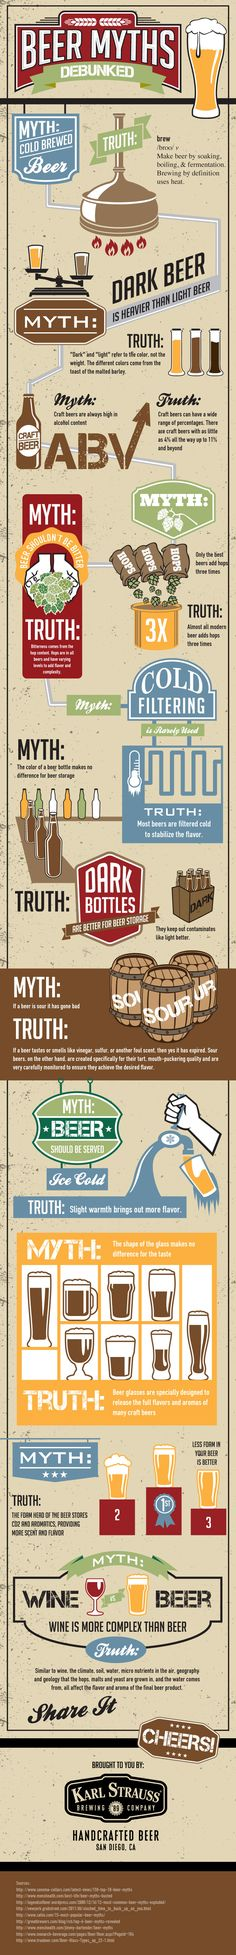 Truth about beer...